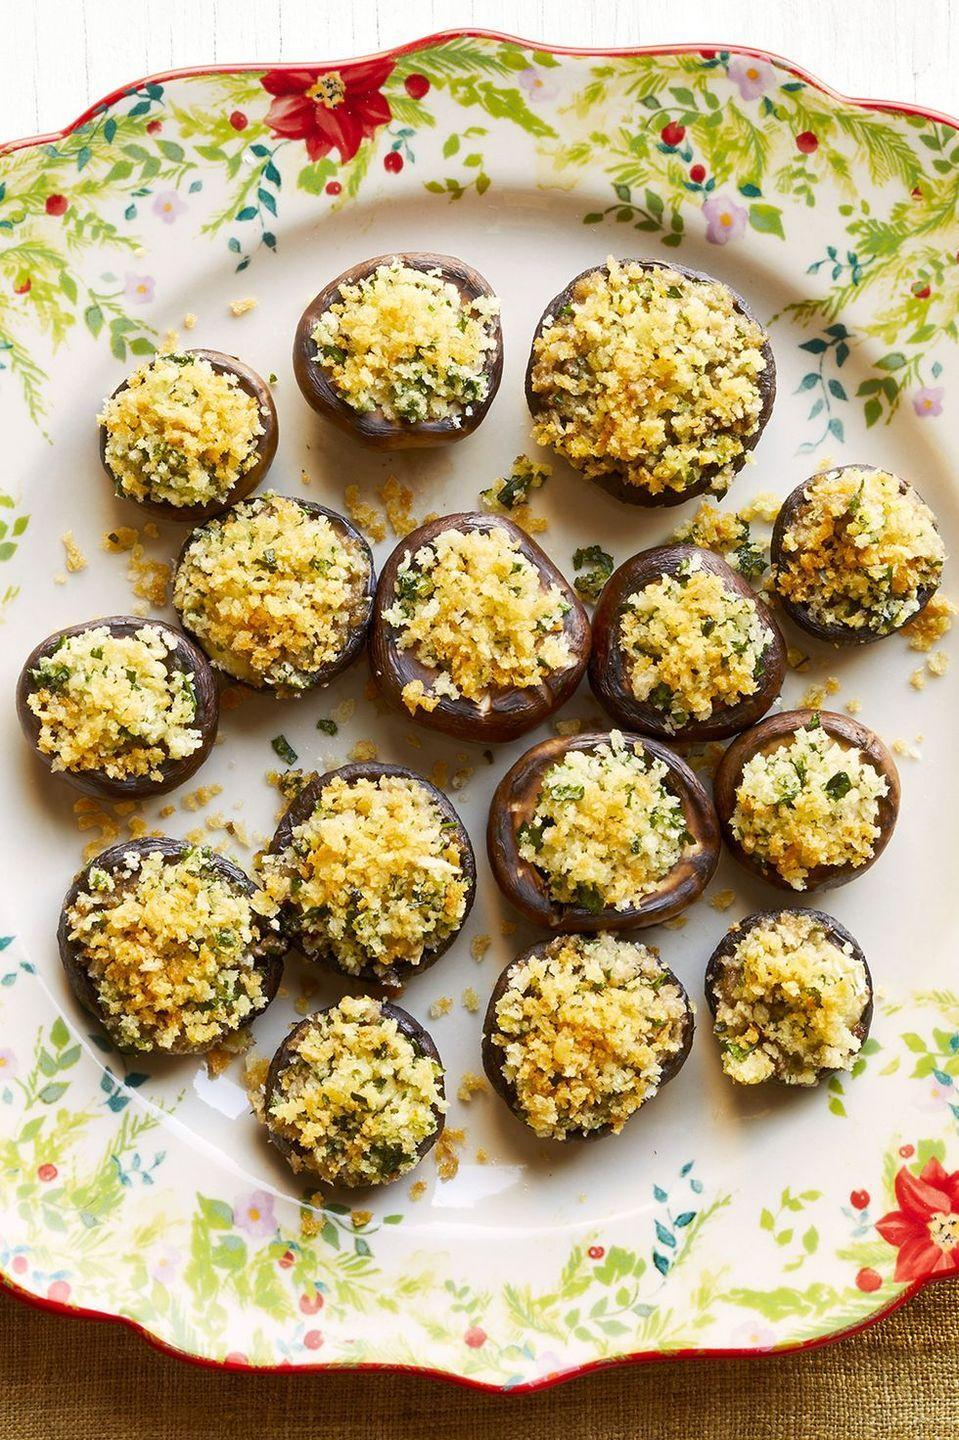 "<p>Wine and cheese—but take it up a notch. Just know, these brie-stuffed mushrooms won't last long. </p><p><strong><a href=""https://www.thepioneerwoman.com/food-cooking/recipes/a34208011/crispy-brie-stuffed-mushrooms-recipe/"" rel=""nofollow noopener"" target=""_blank"" data-ylk=""slk:Get the recipe."" class=""link rapid-noclick-resp"">Get the recipe.</a></strong></p><p><strong><a class=""link rapid-noclick-resp"" href=""https://go.redirectingat.com?id=74968X1596630&url=https%3A%2F%2Fwww.walmart.com%2Fip%2FTropical-Toile-Bird-Mix-and-Match-4-Piece-Appetizer-Plate-Set-by-Drew-Barrymore-Flower-Home%2F673027594&sref=https%3A%2F%2Fwww.thepioneerwoman.com%2Fhome-lifestyle%2Fentertaining%2Fg34192298%2F50th-birthday-party-ideas%2F"" rel=""nofollow noopener"" target=""_blank"" data-ylk=""slk:SHOP APPETIZER PLATES"">SHOP APPETIZER PLATES</a><br></strong></p>"